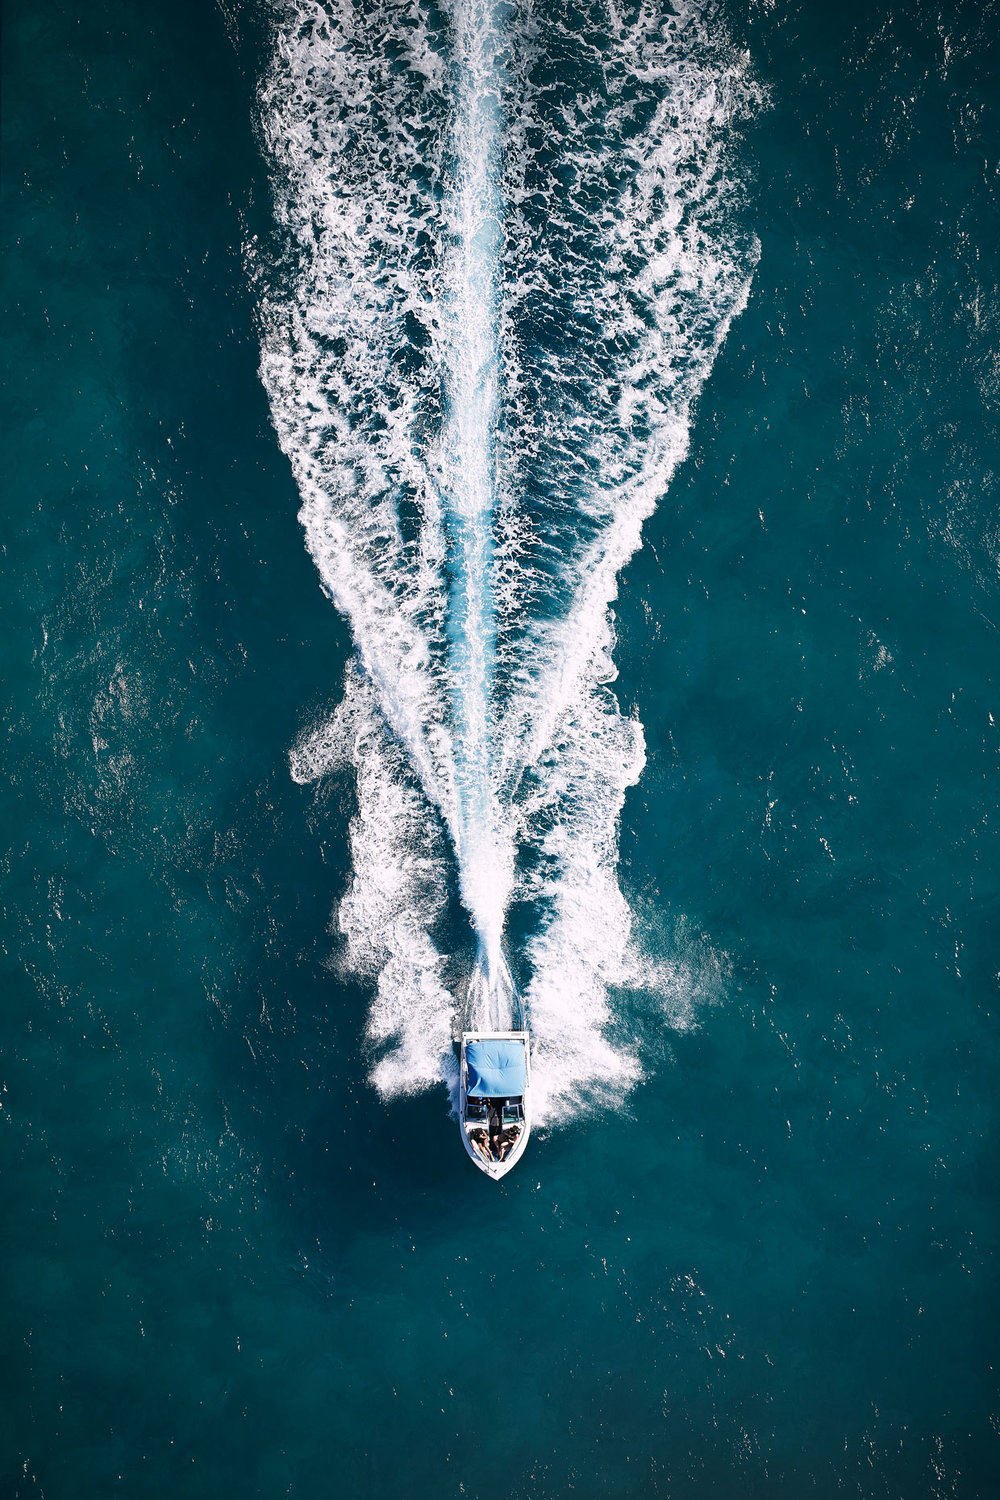 Travel Photography Dominican Republic Derek Israelsen Aerial Boat